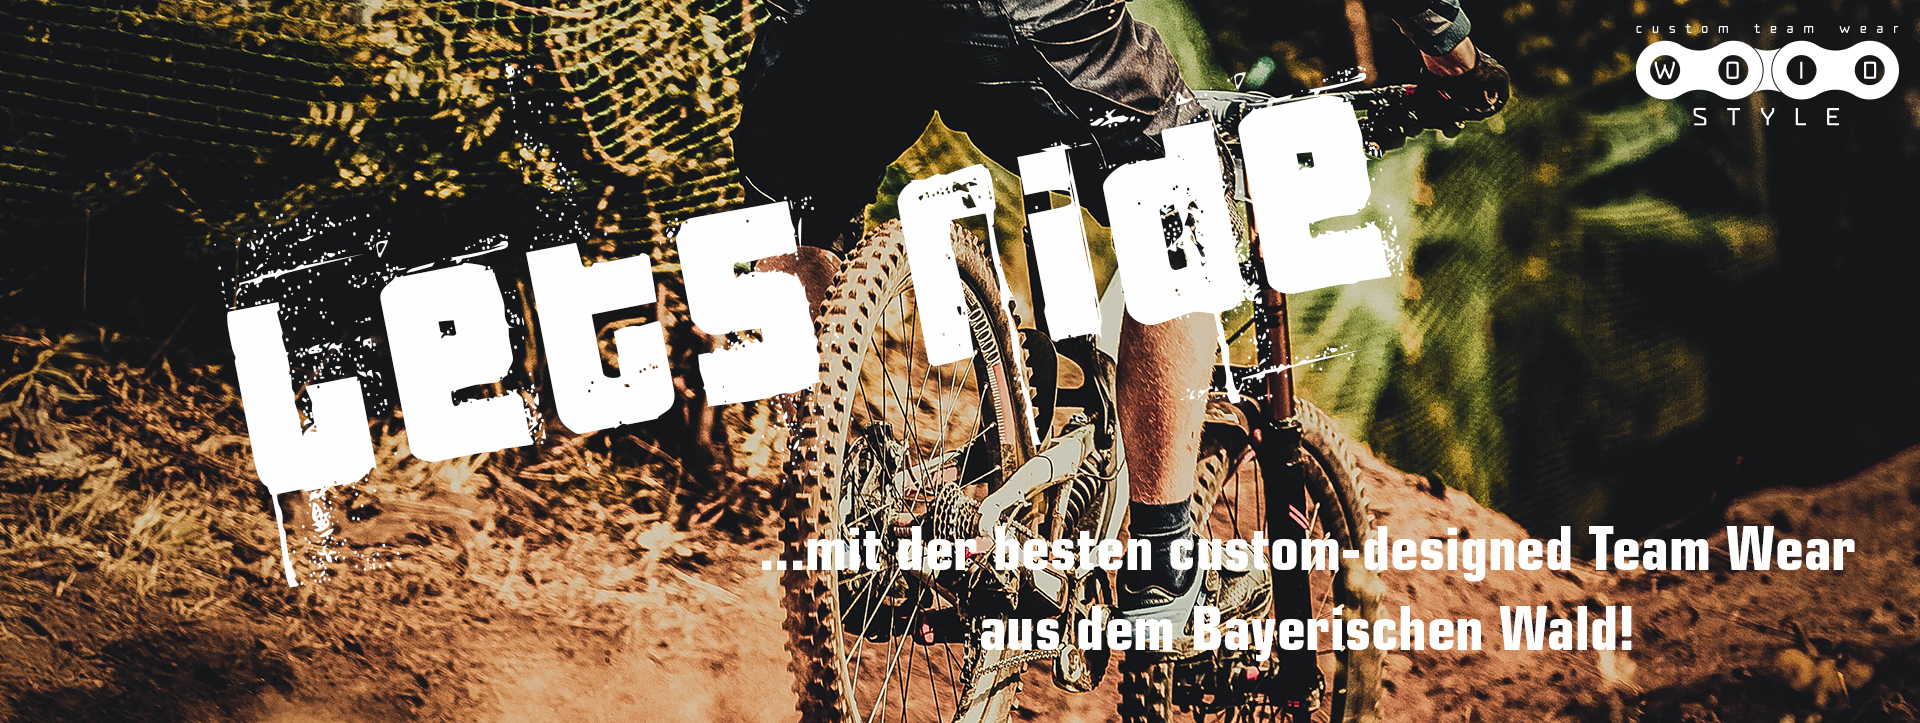 woidstyle creative design werbetechnik mountain bike bmx custom team wear jersey rad bekleidung regen deggendorf